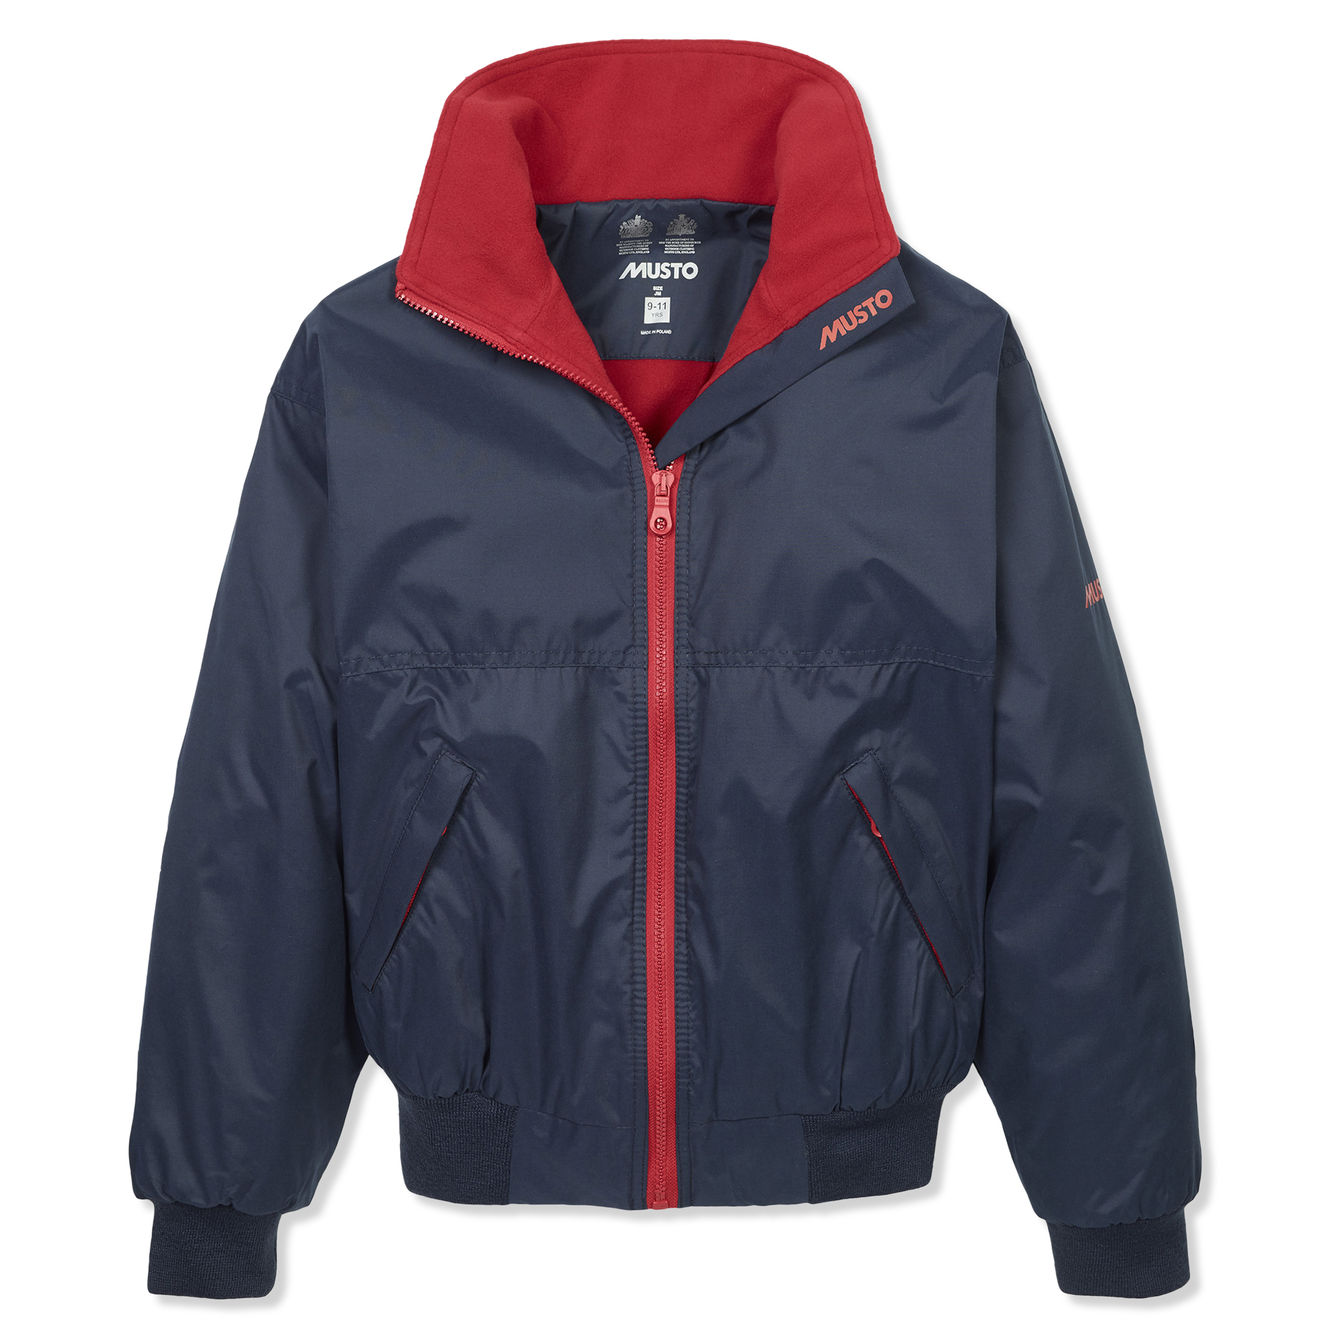 JR SNUG SPORT BLOUSON JACKET